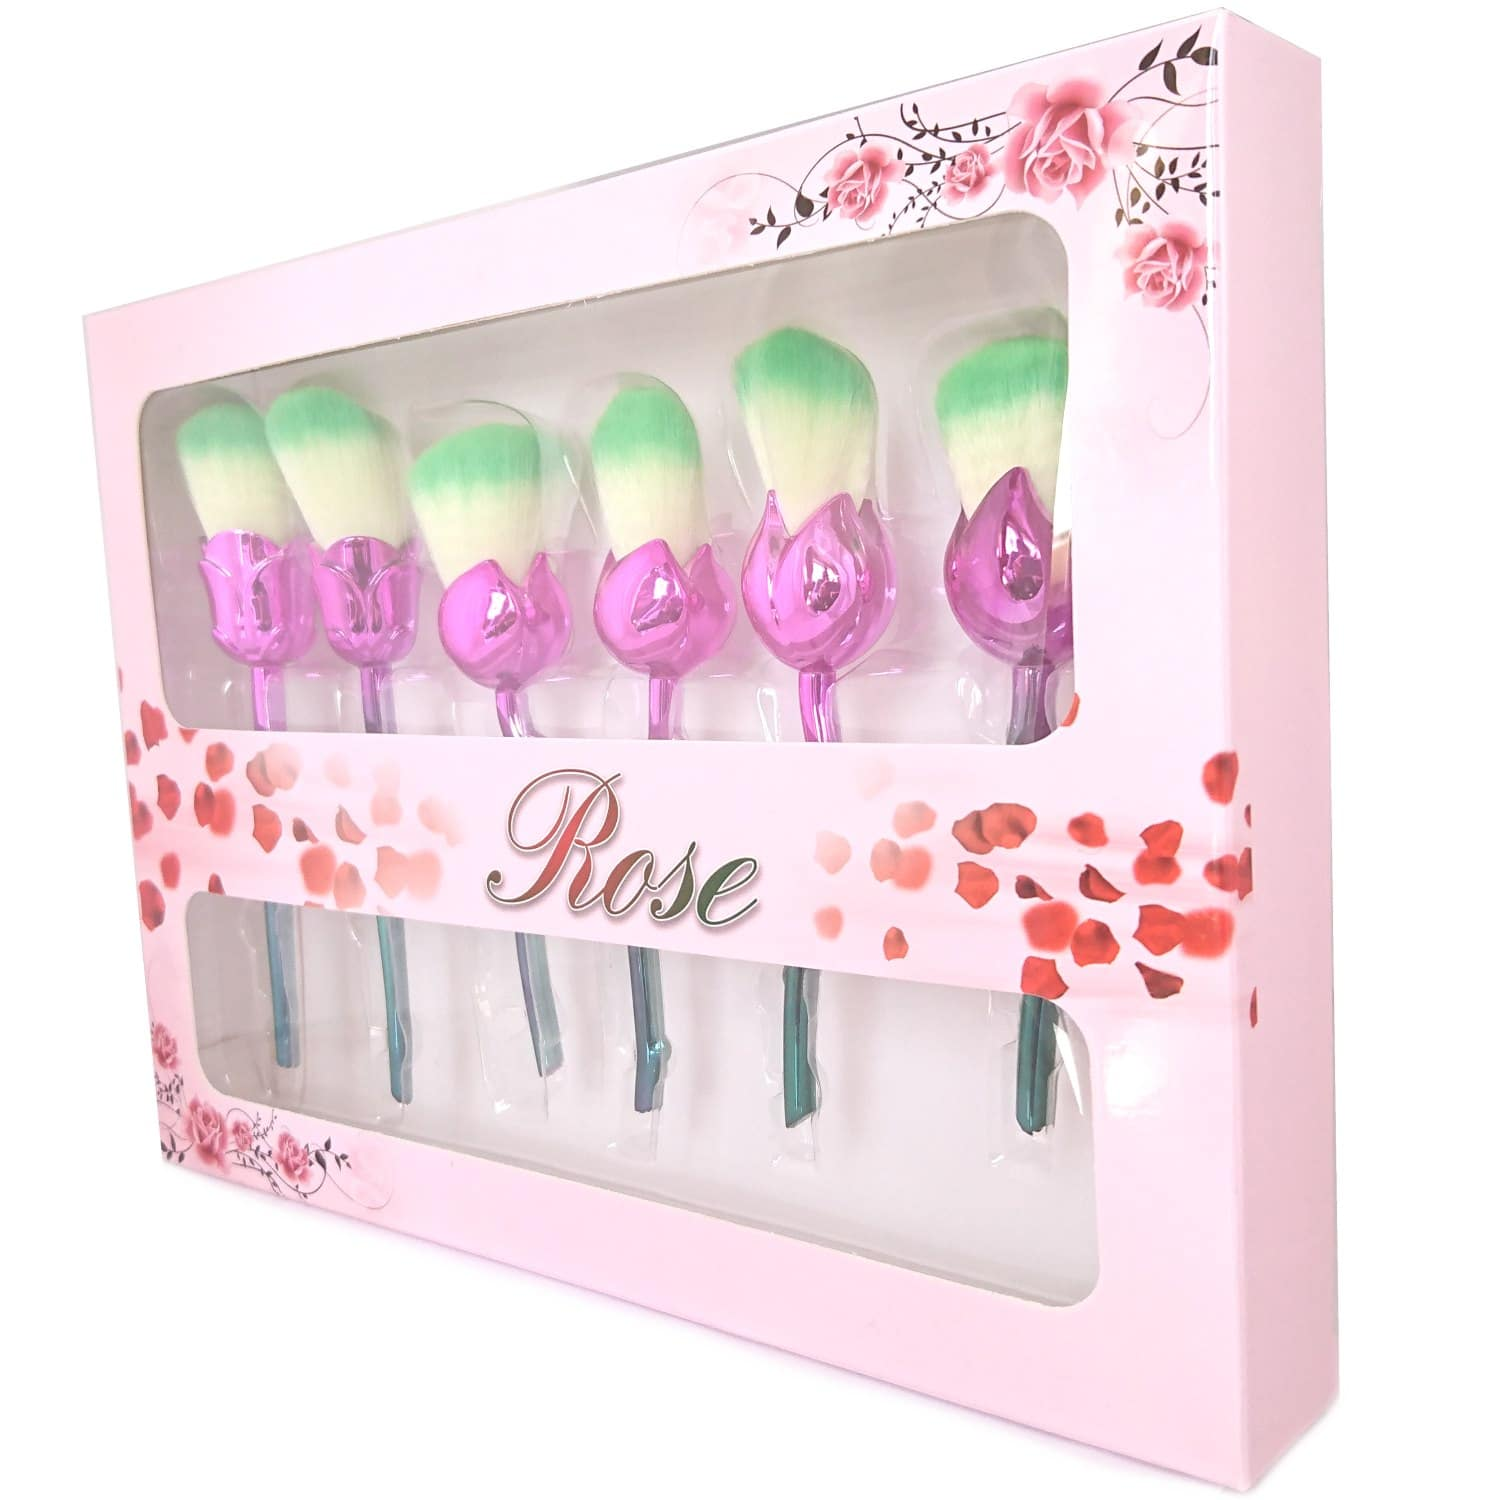 Flower makeup brushes